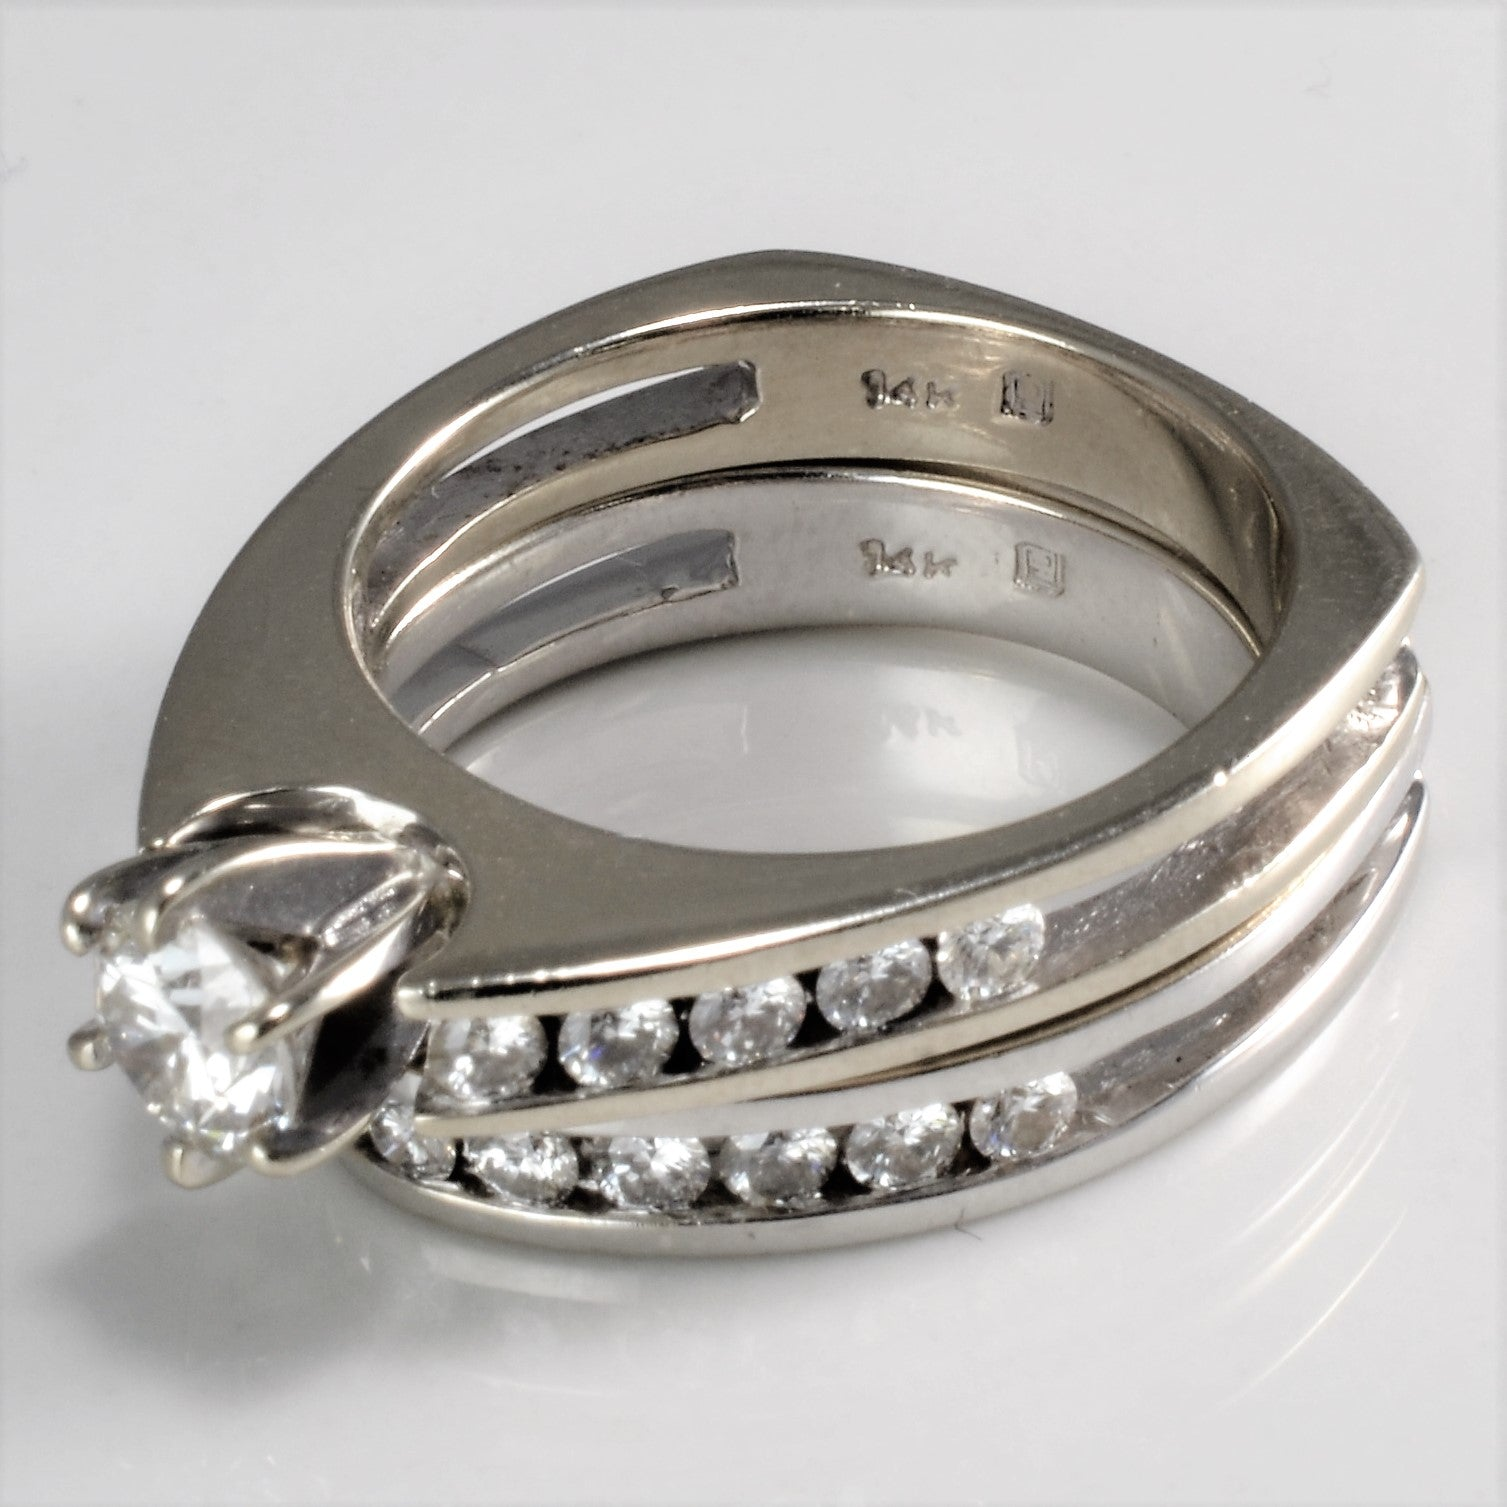 Channel Diamond Ladies Wedding Ring Set | 1.05 ctw, SZ 6 |